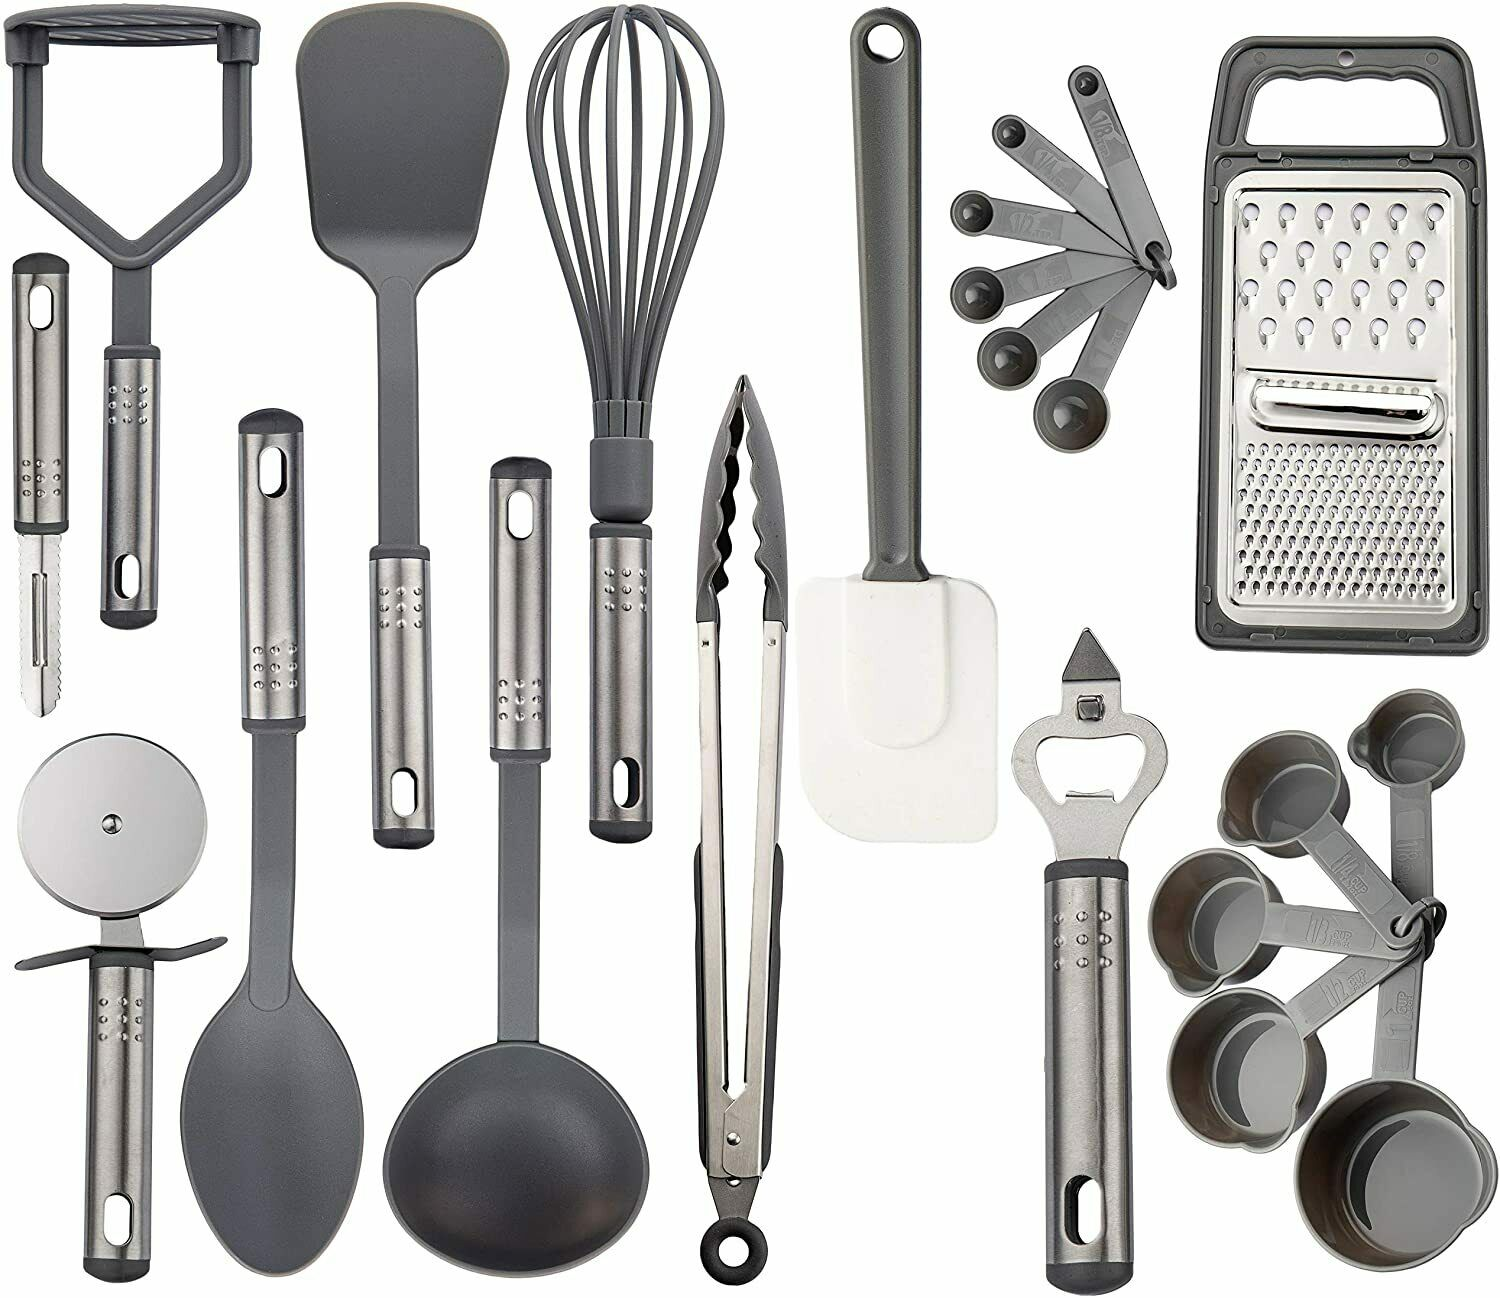 23 Piece Cooking Utensil Set Stainless Steel Nylon Kitchen Gadgets Utensils